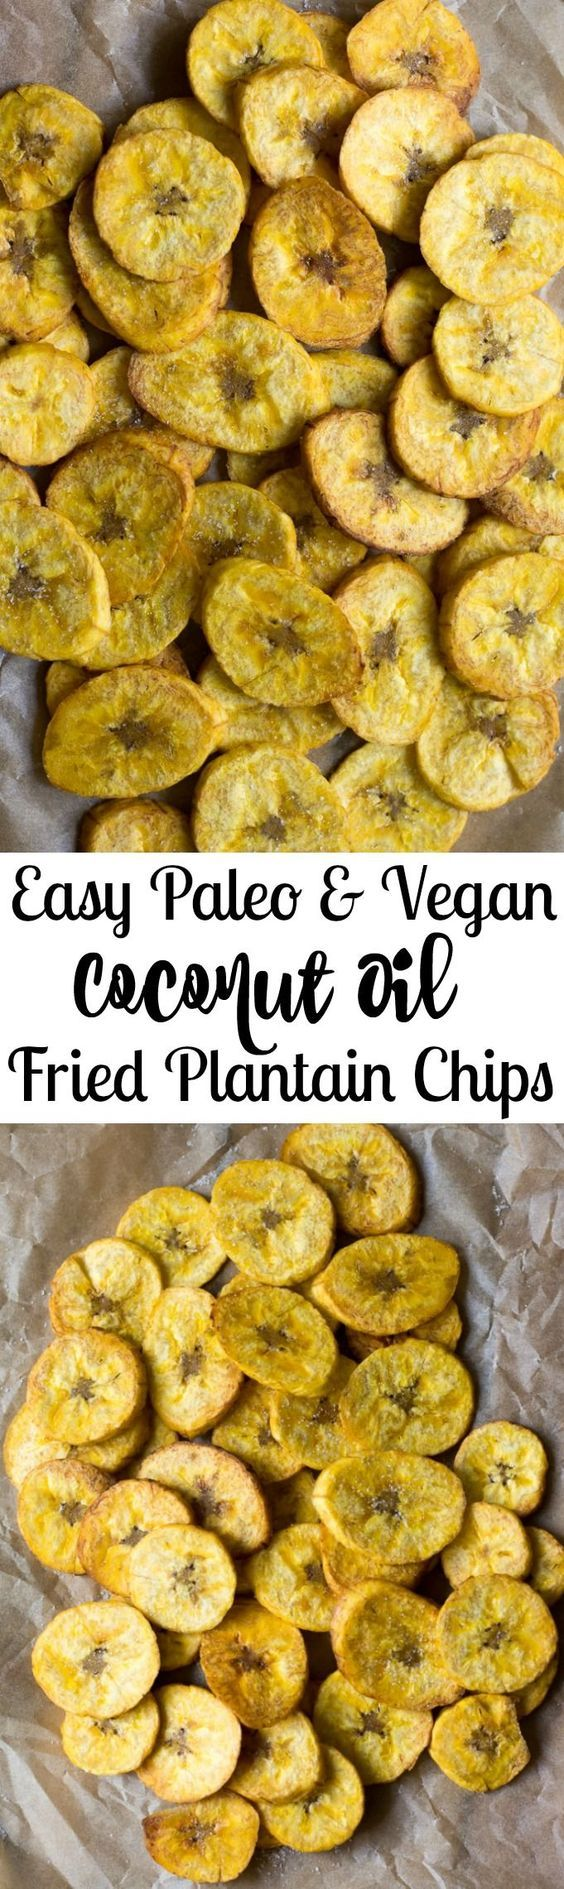 Easy Paleo, vegan and Whole30 coconut oil fried plantain chips